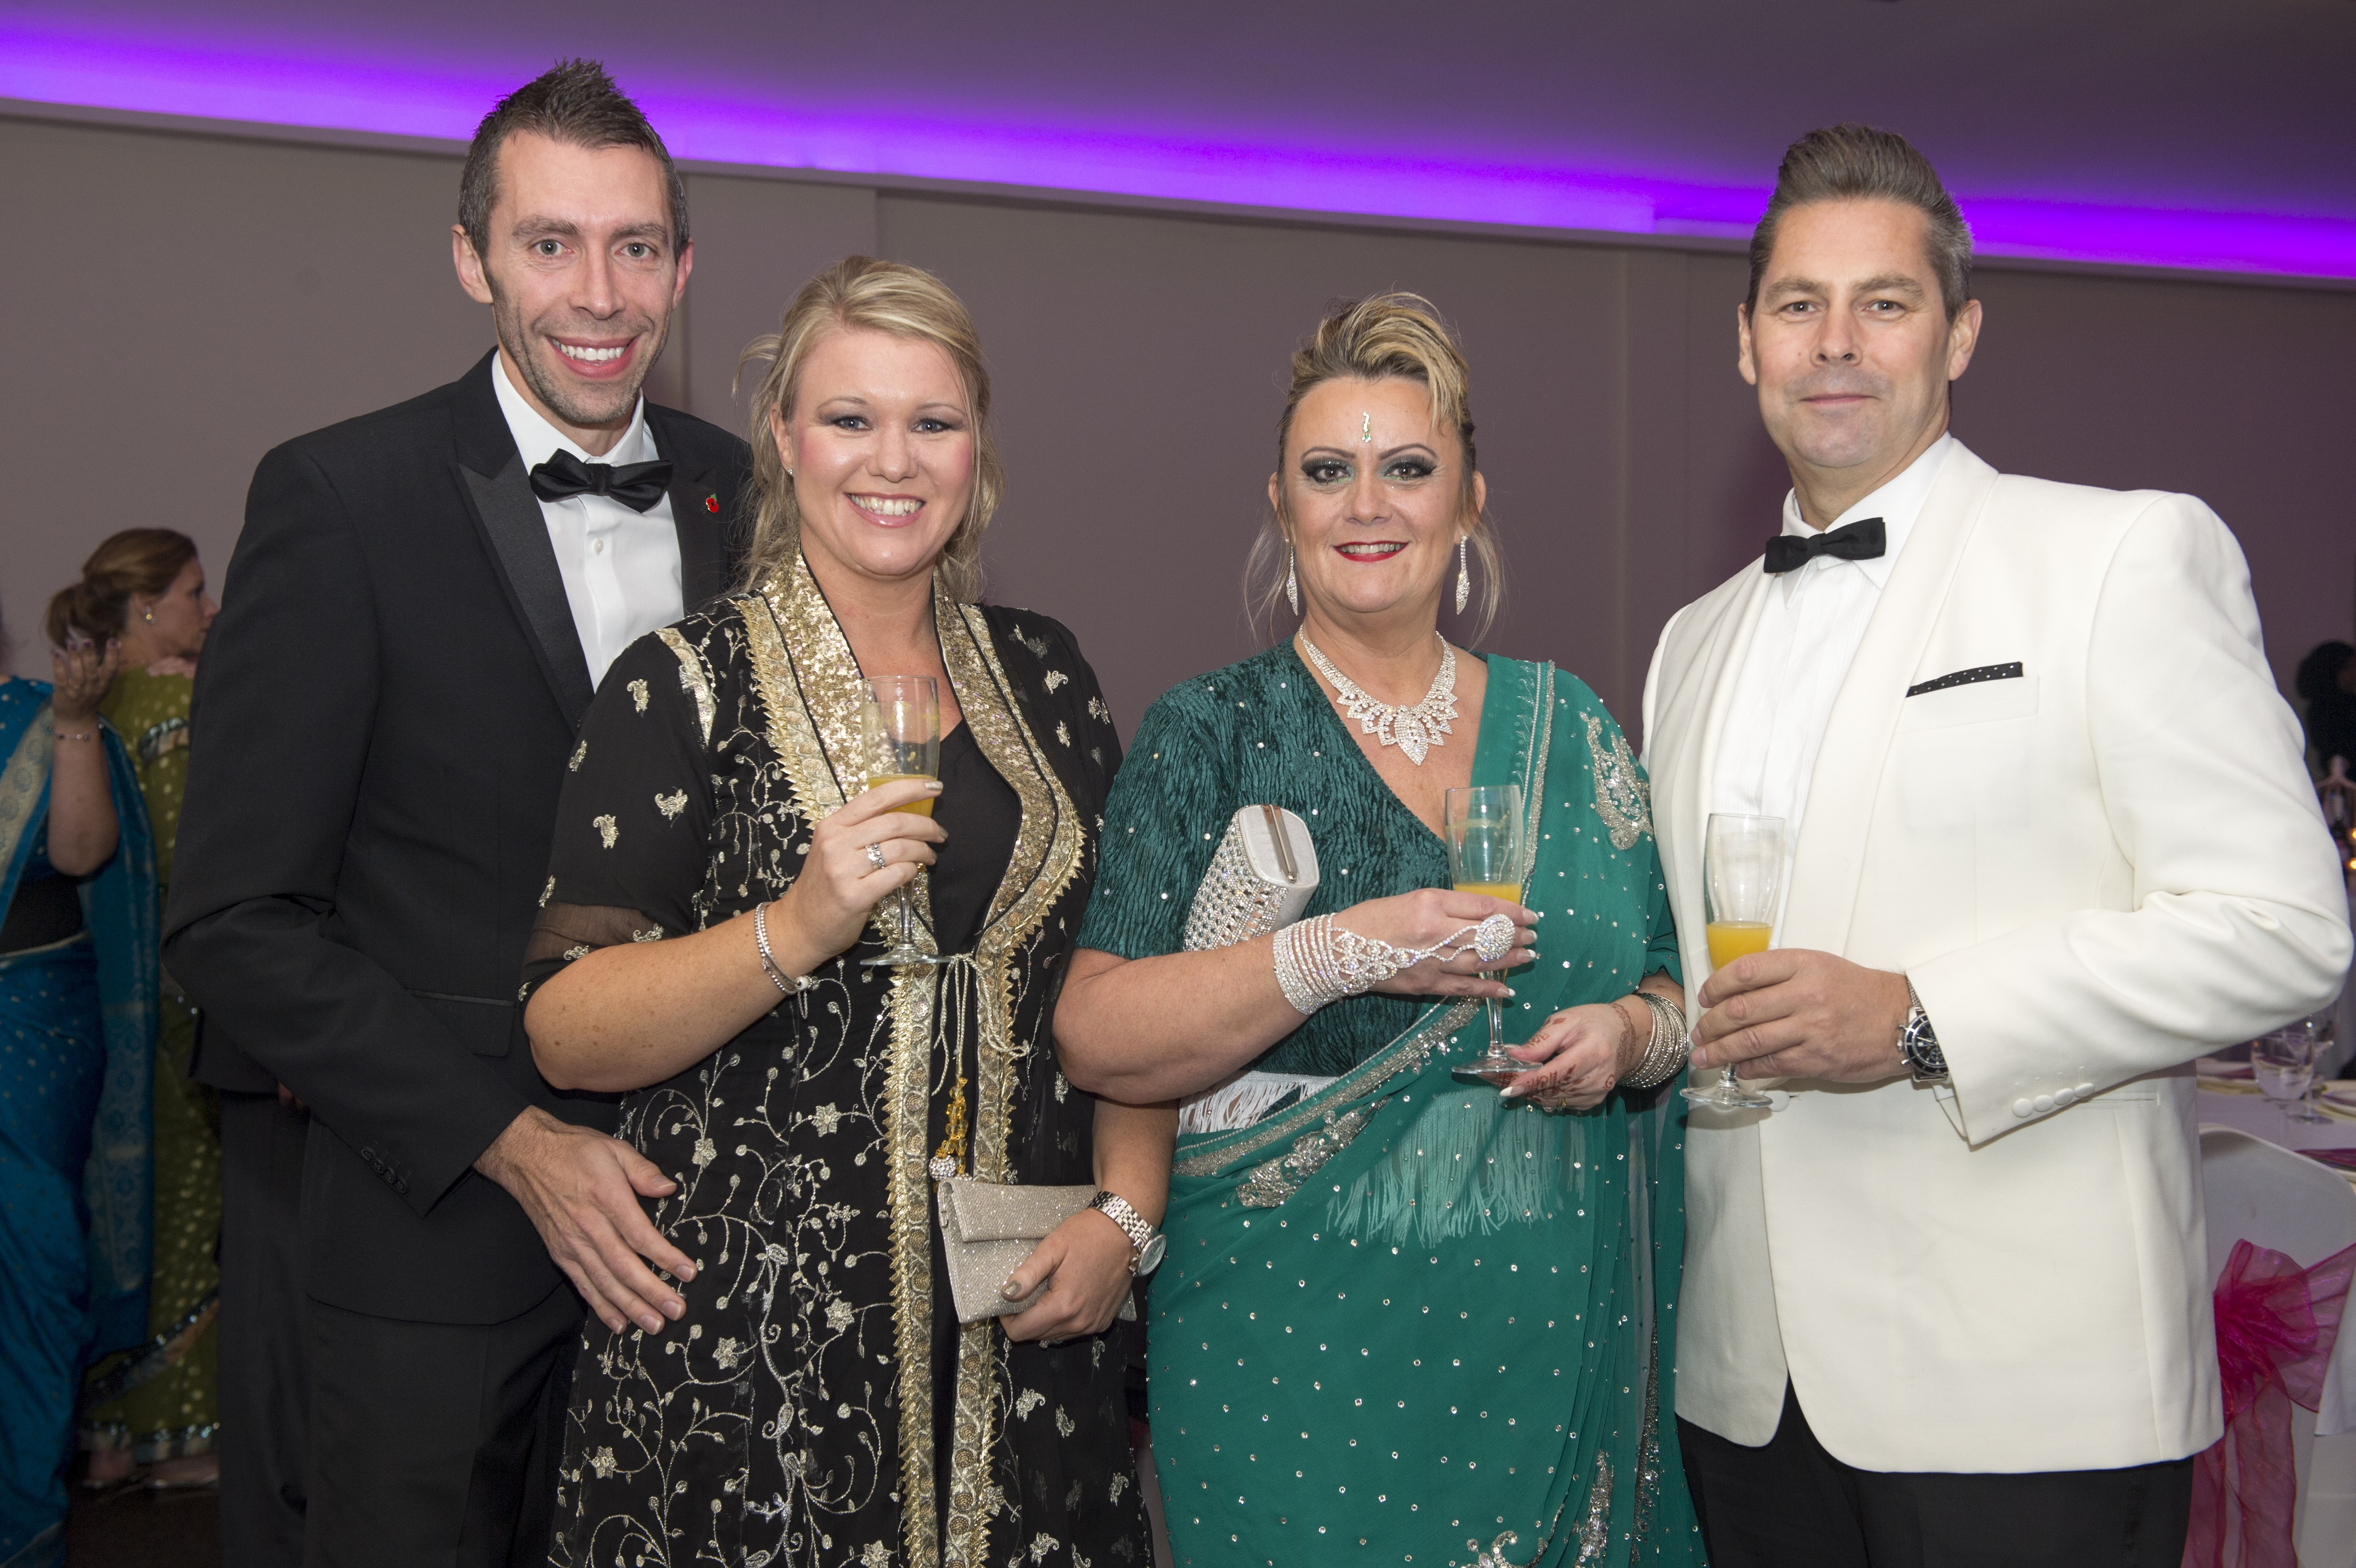 Bhayani Law Bollywood Ball held at Arooj, Attercliffe Road in Sheffield Saturday 7th November 2015 Simon Dennis, Palmer Construction MD and wife Claire Dennis, Bridget Wheatley with husband Shaun, Palmer Construction director